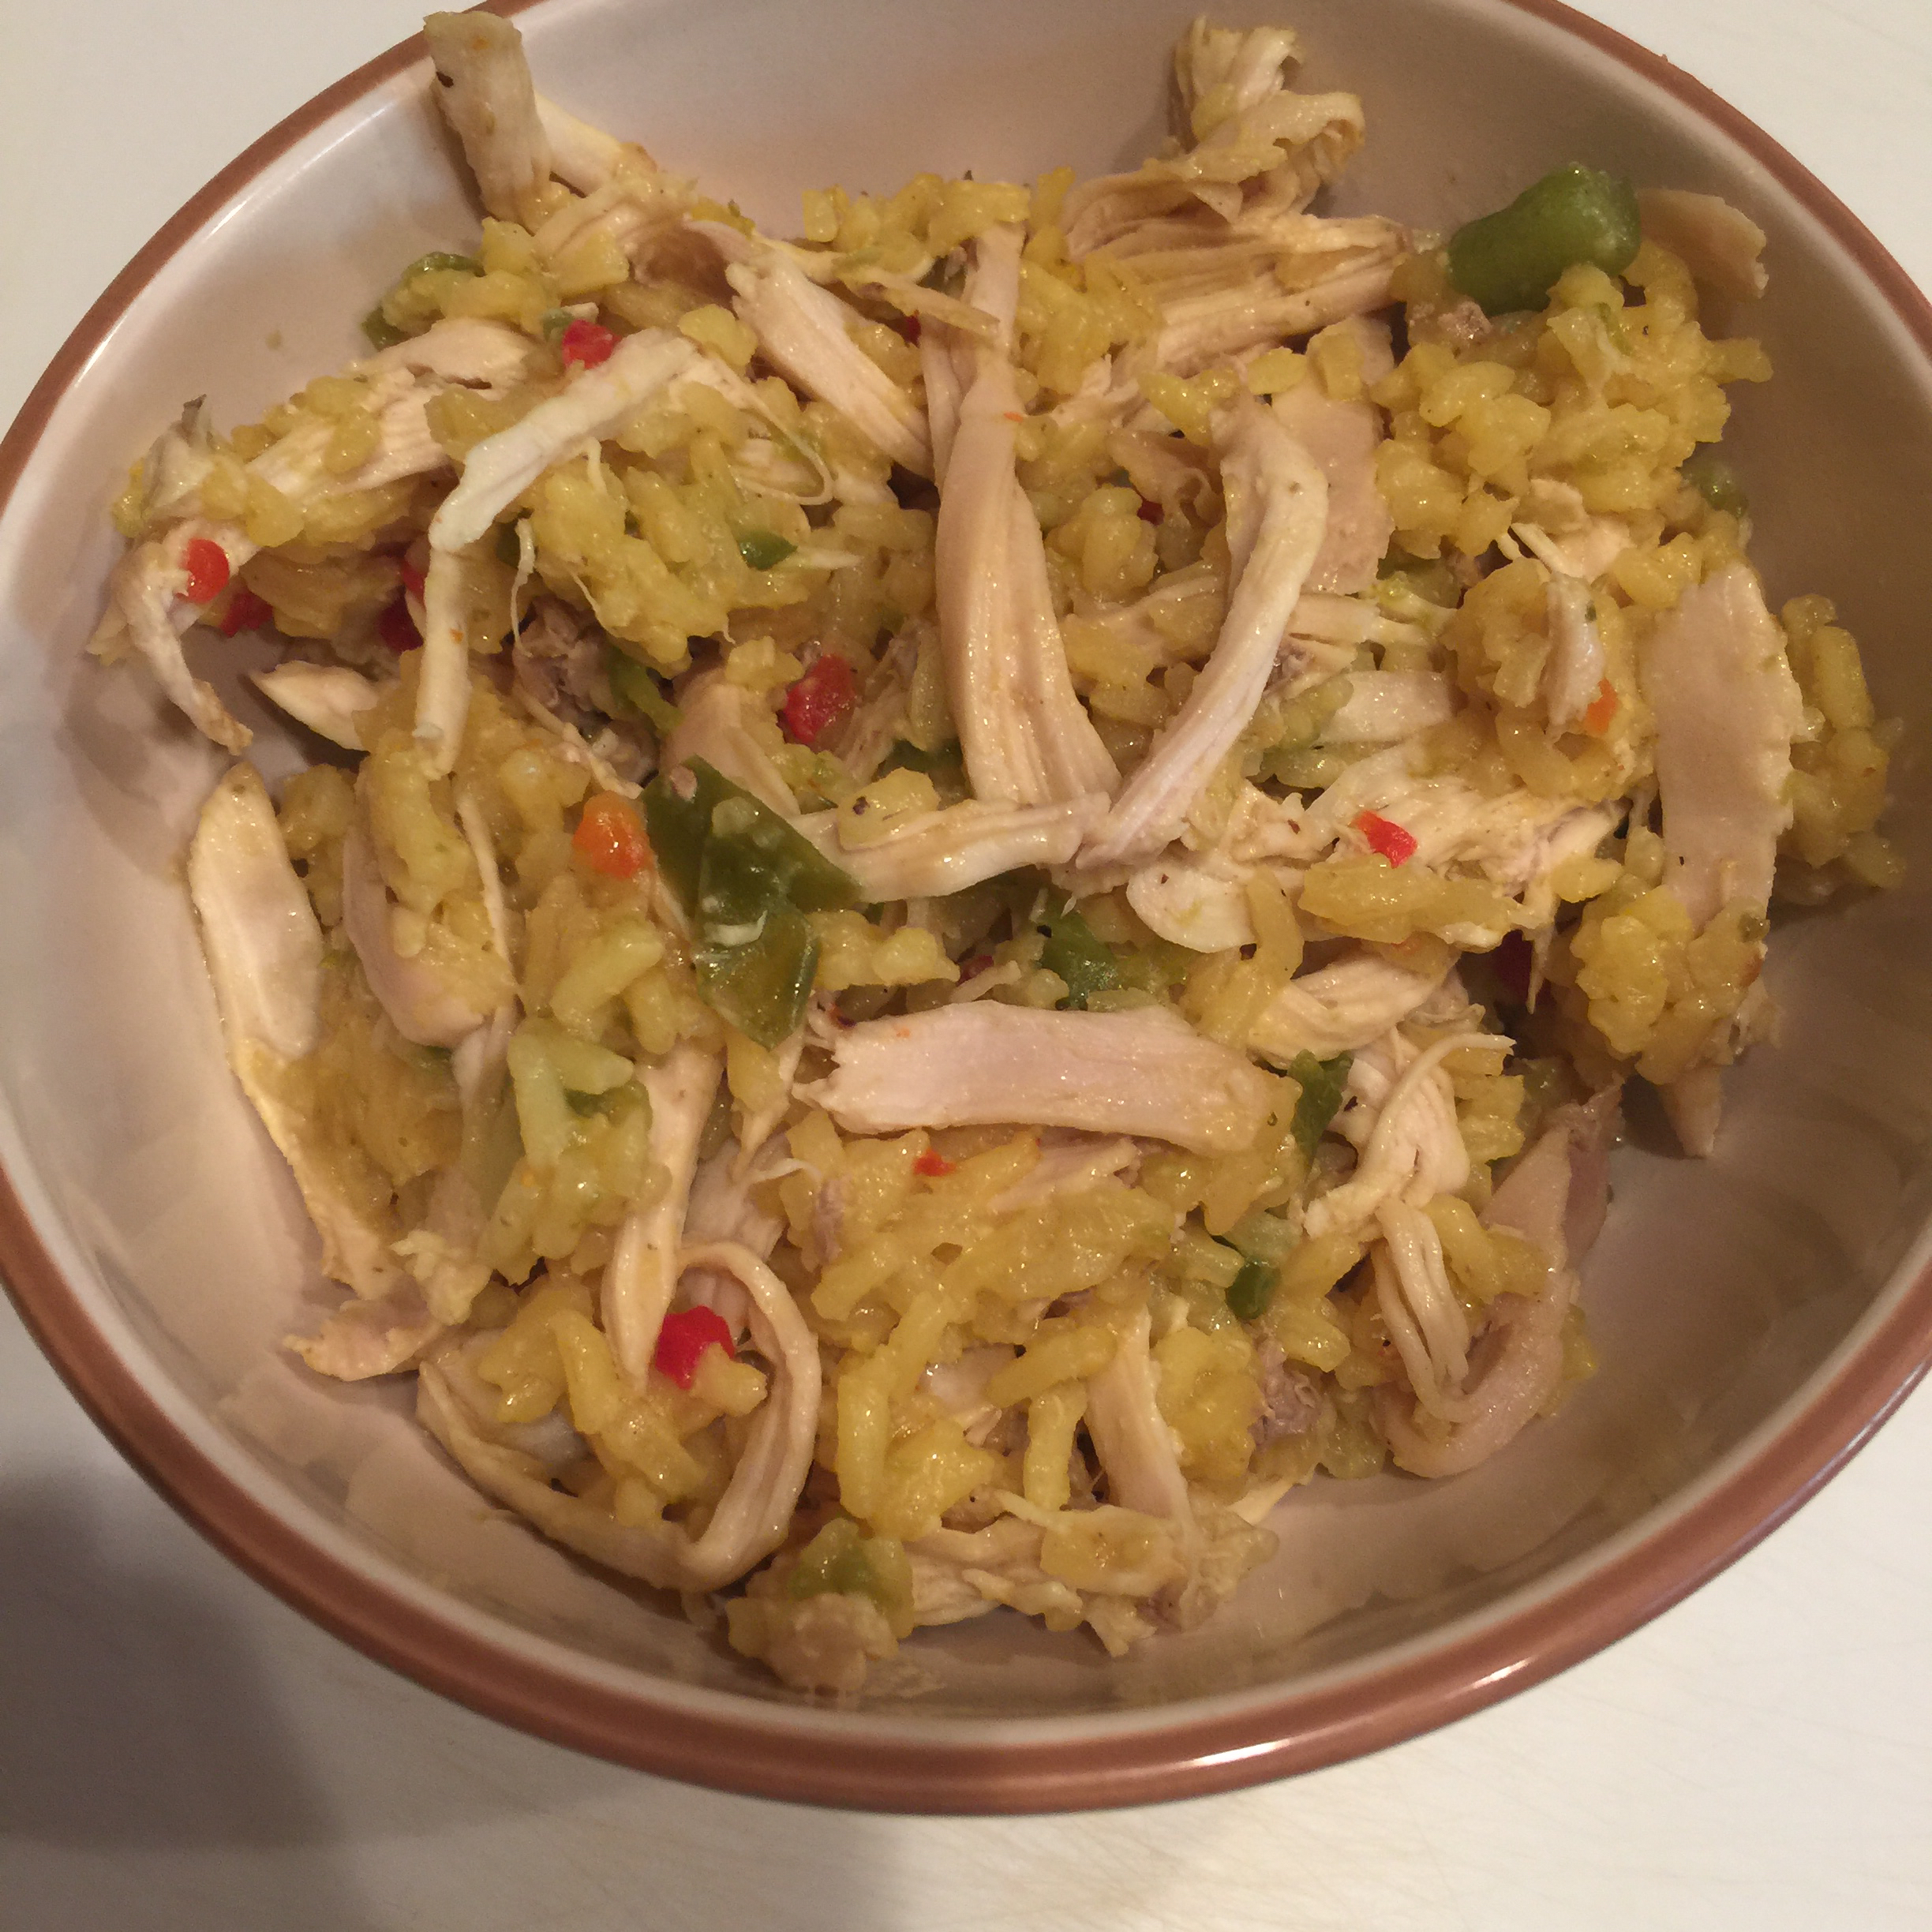 Awesome Chicken and Yellow Rice Casserole Riley Warren